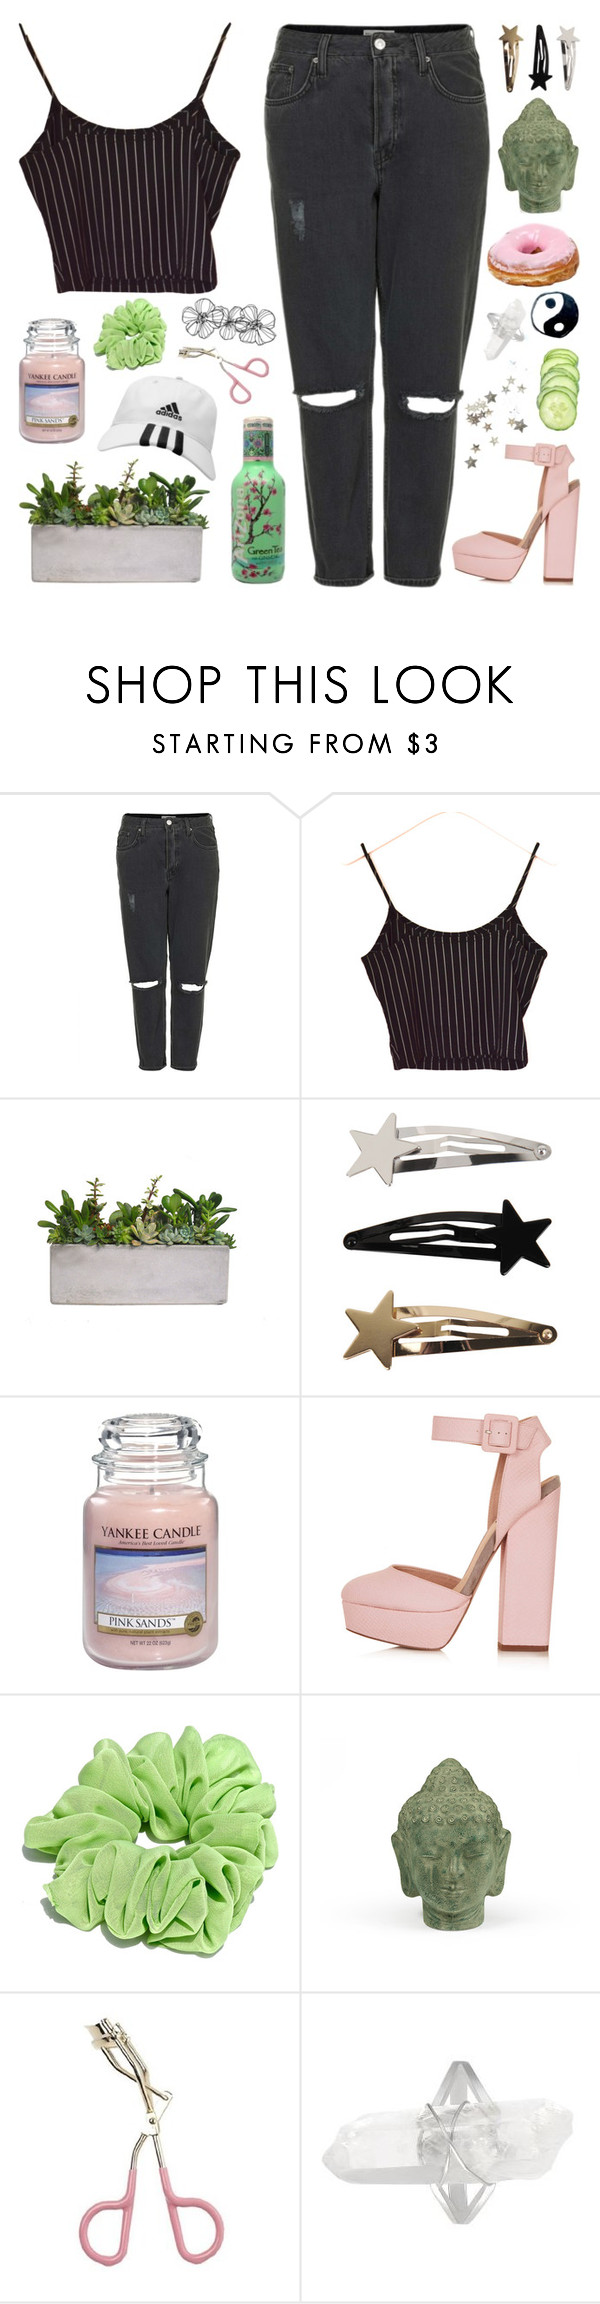 """""""deep breaths"""" by anythingbutjustx ❤ liked on Polyvore featuring Topshop, Yankee Candle, Puji and Etude House"""